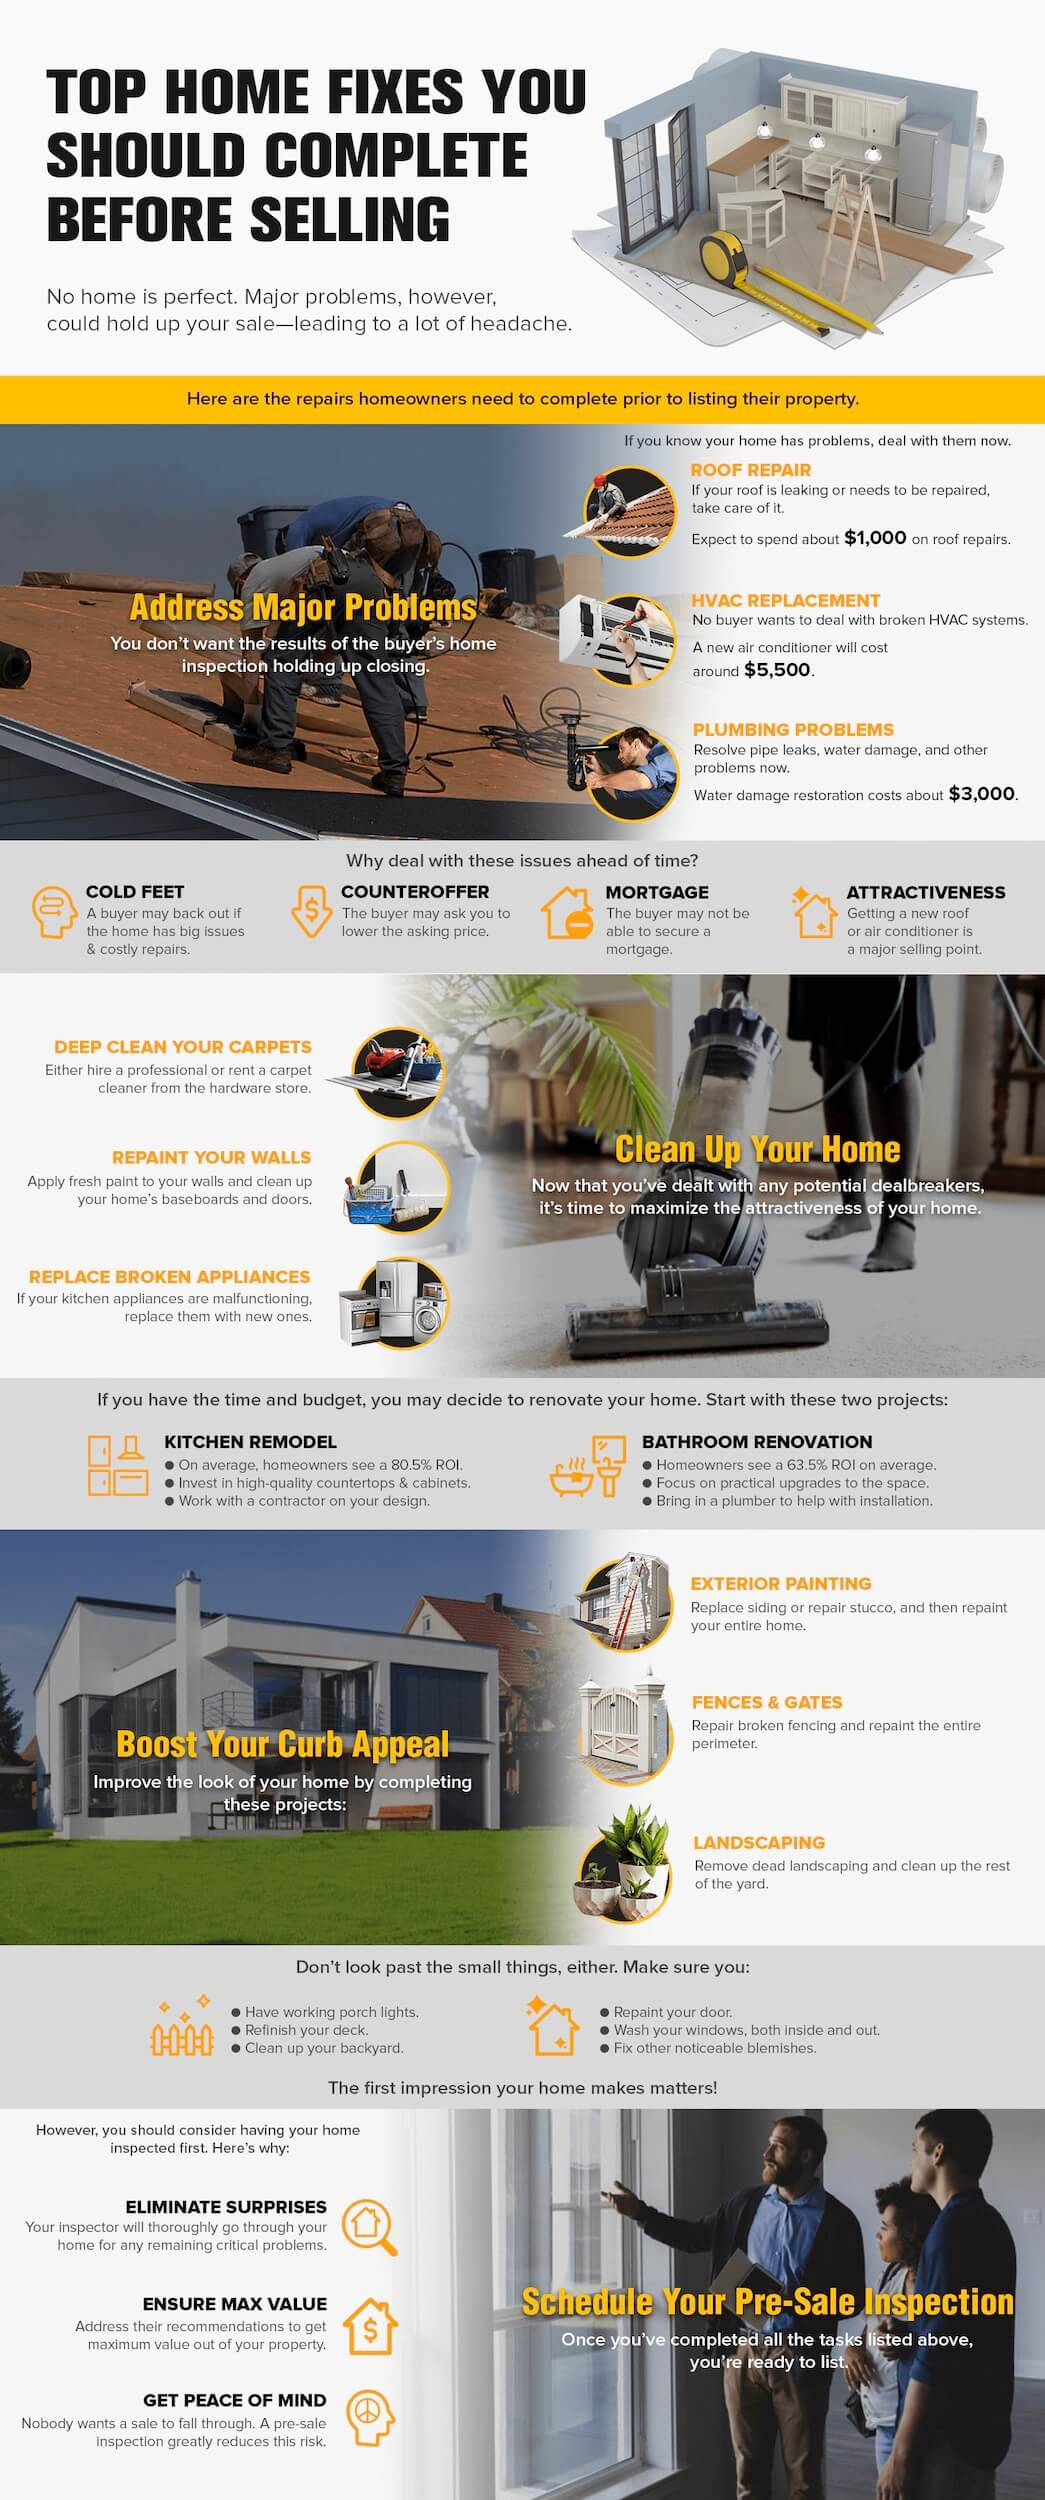 This infographic reviews the critical home repairs that should be completed prior to listing a home.